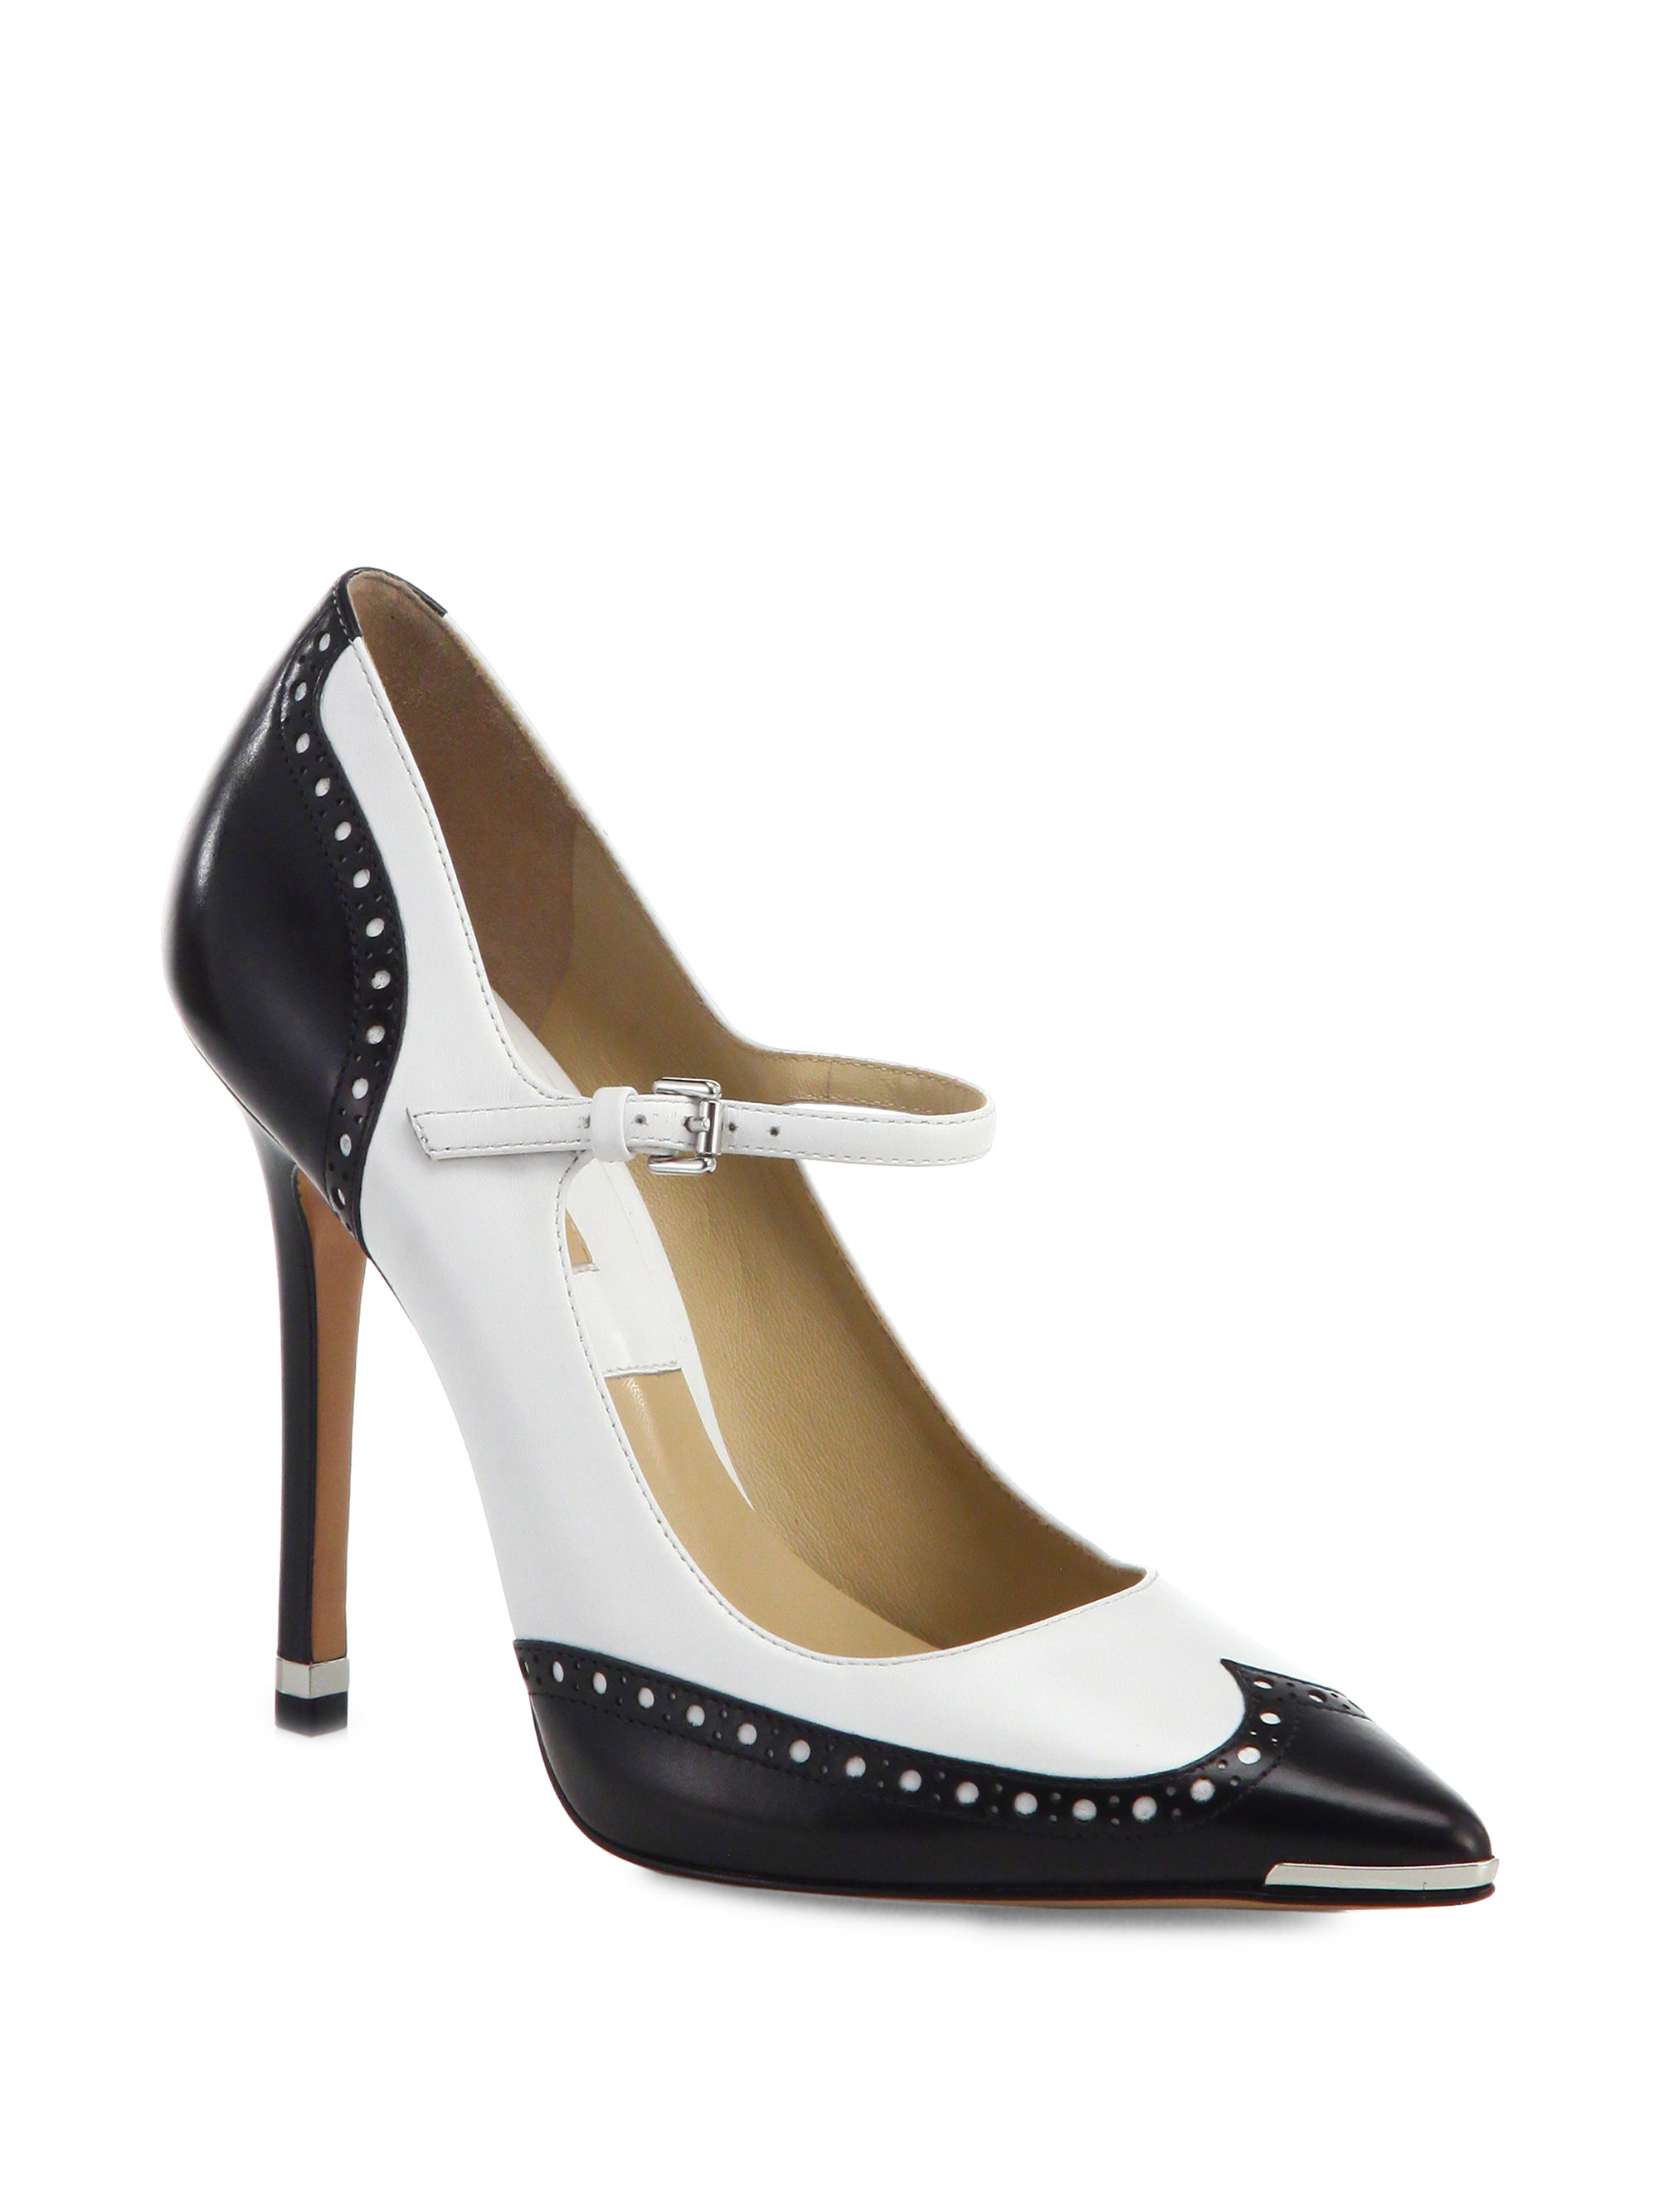 How To Wear Black And White Spectator Shoes